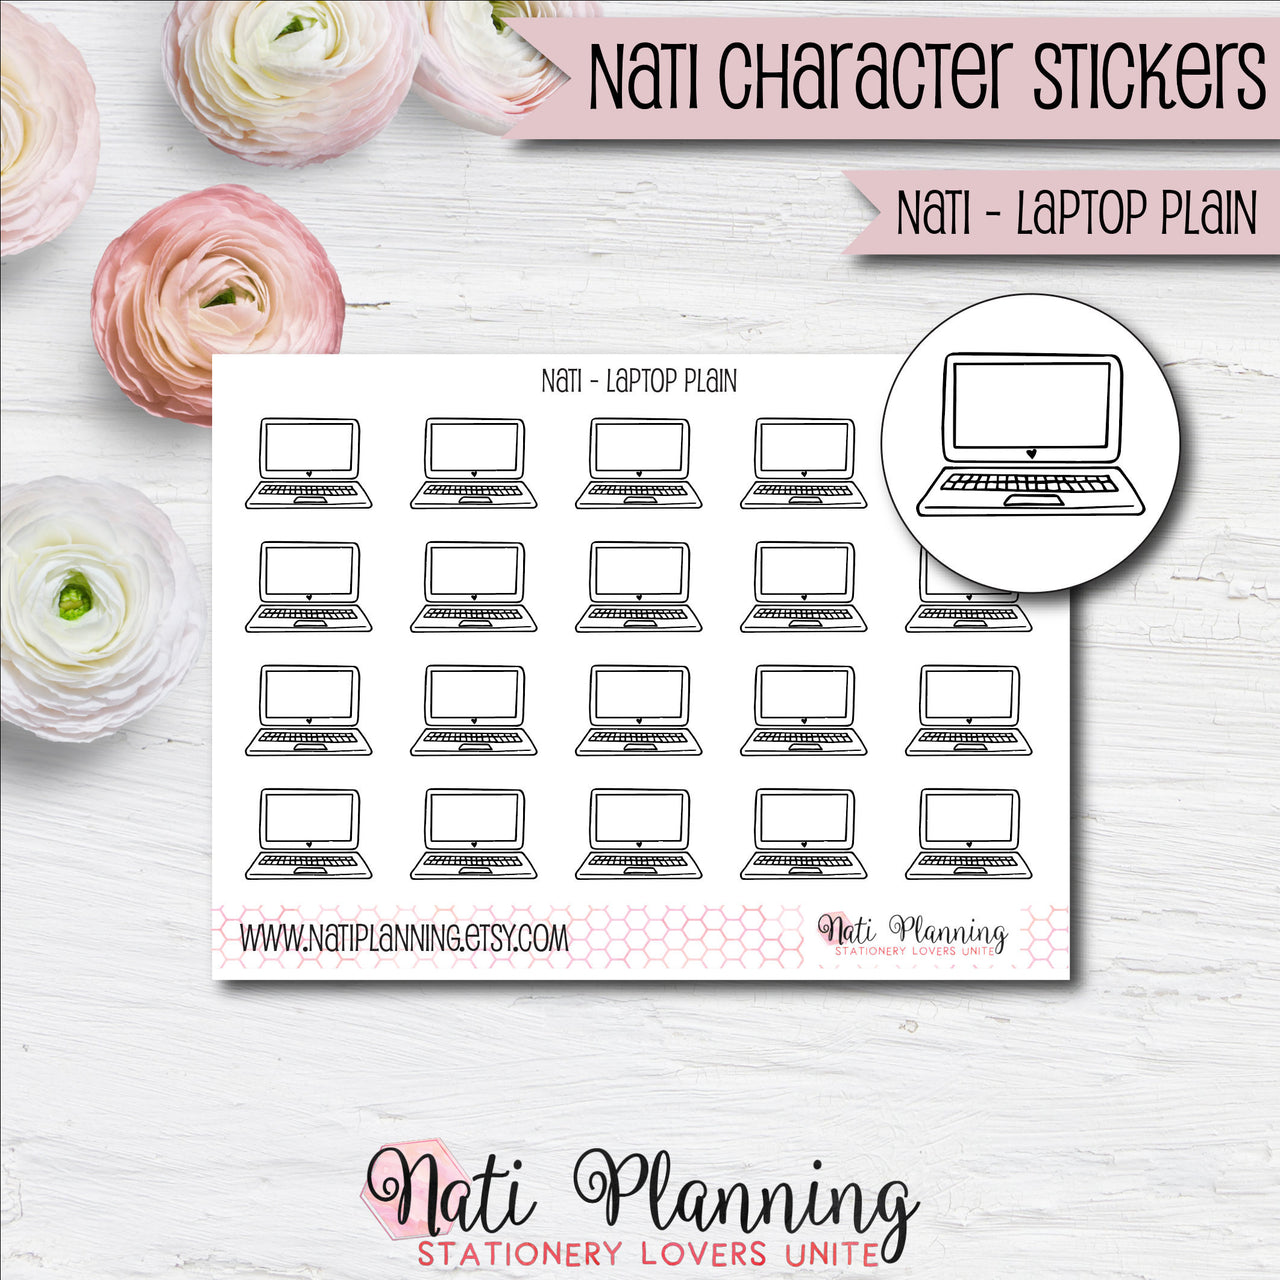 Nati - Laptop Plain Stickers